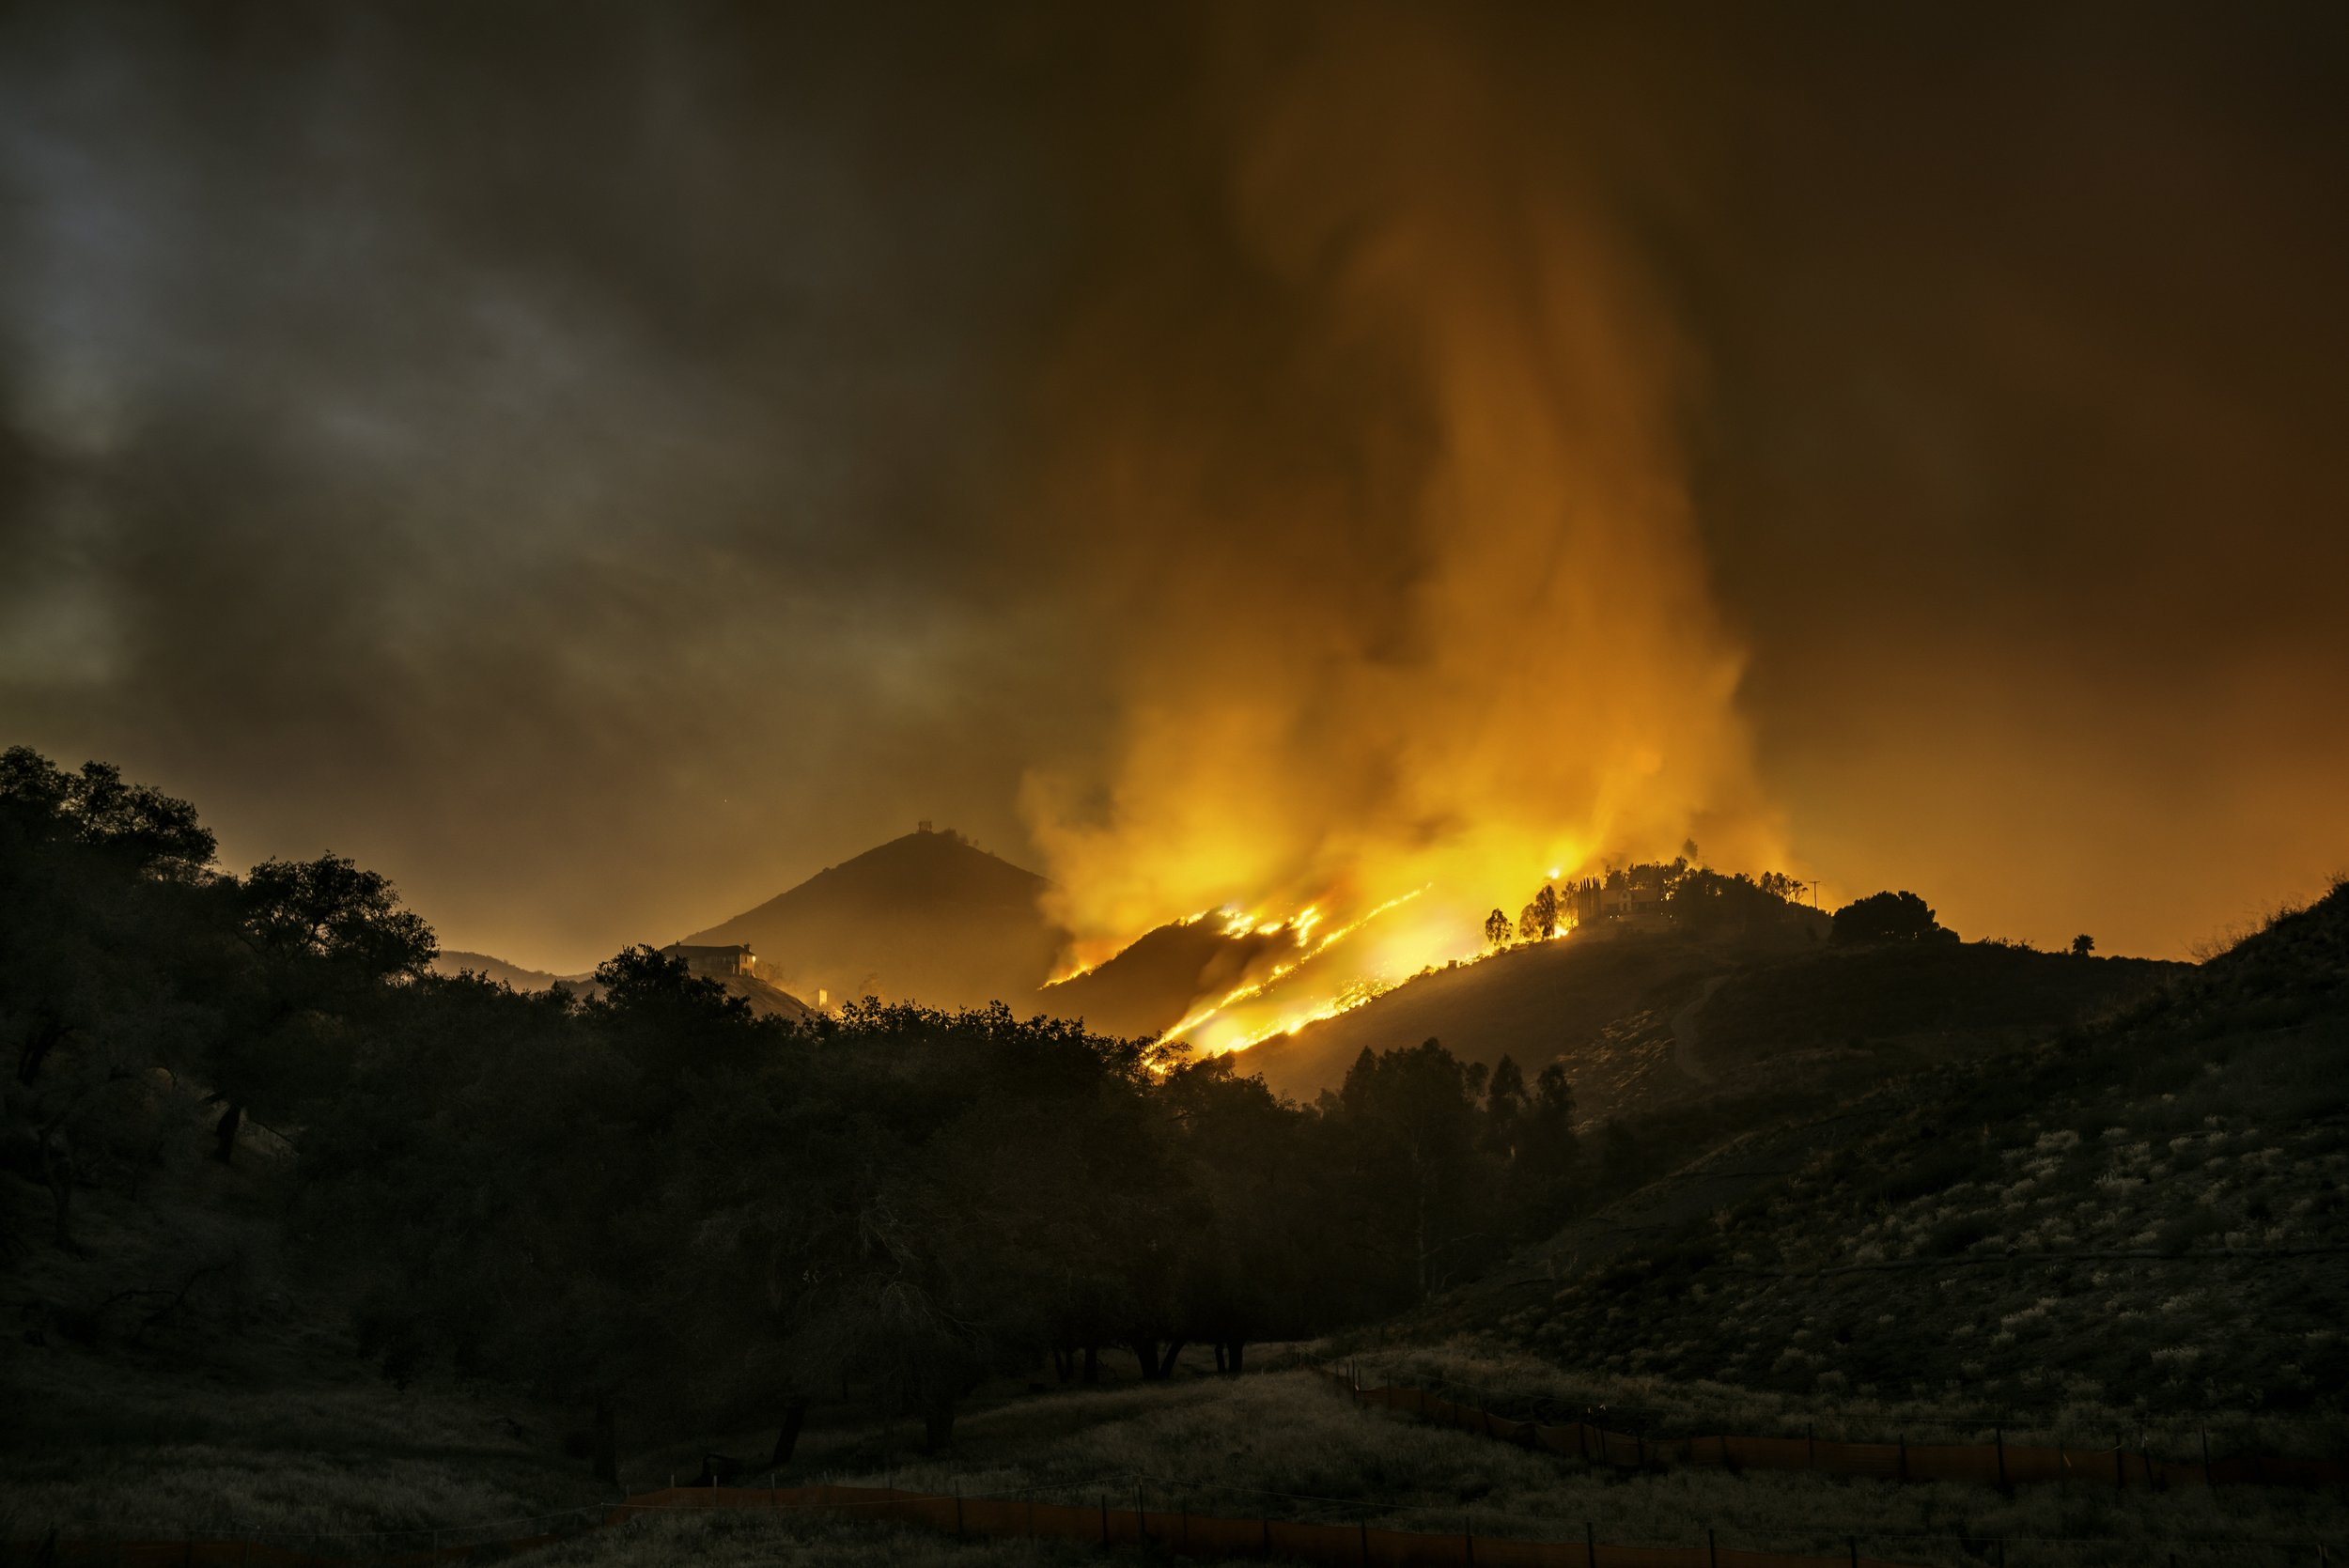 austin-trigg-southern-california-forest-fire-wildfire-hills-night-long-exposure.jpg